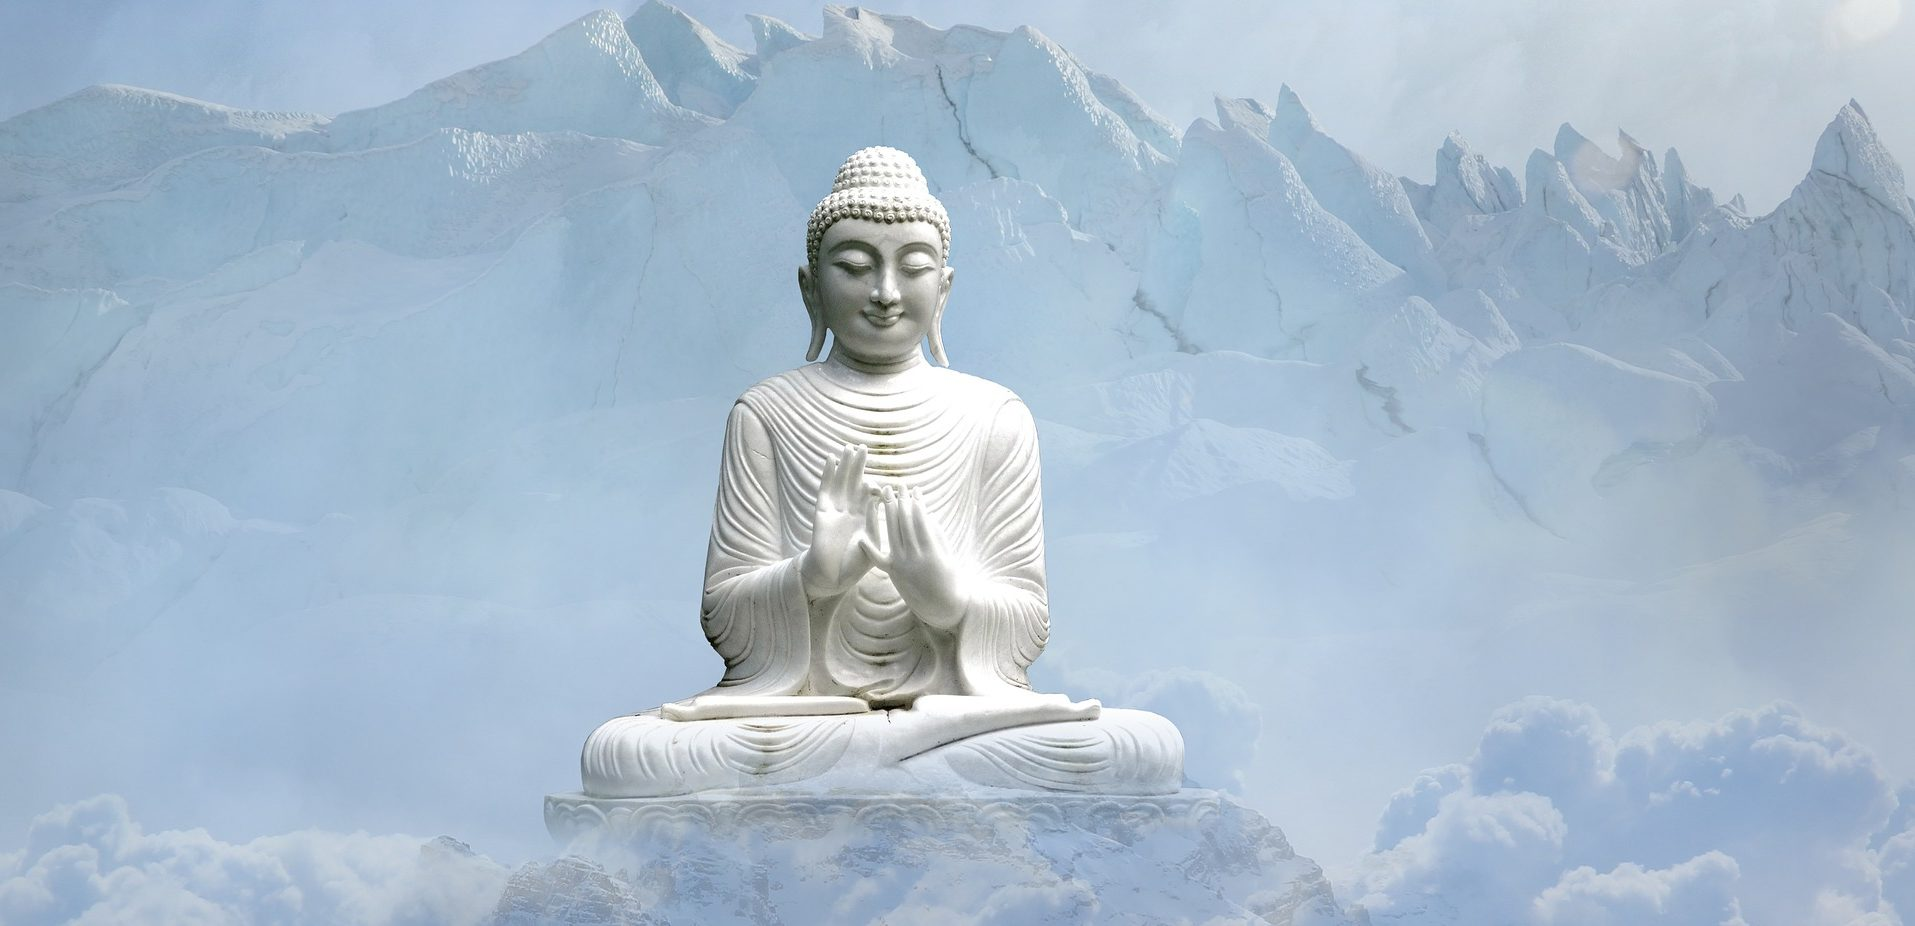 Buddha Meditation in clouds and mountains